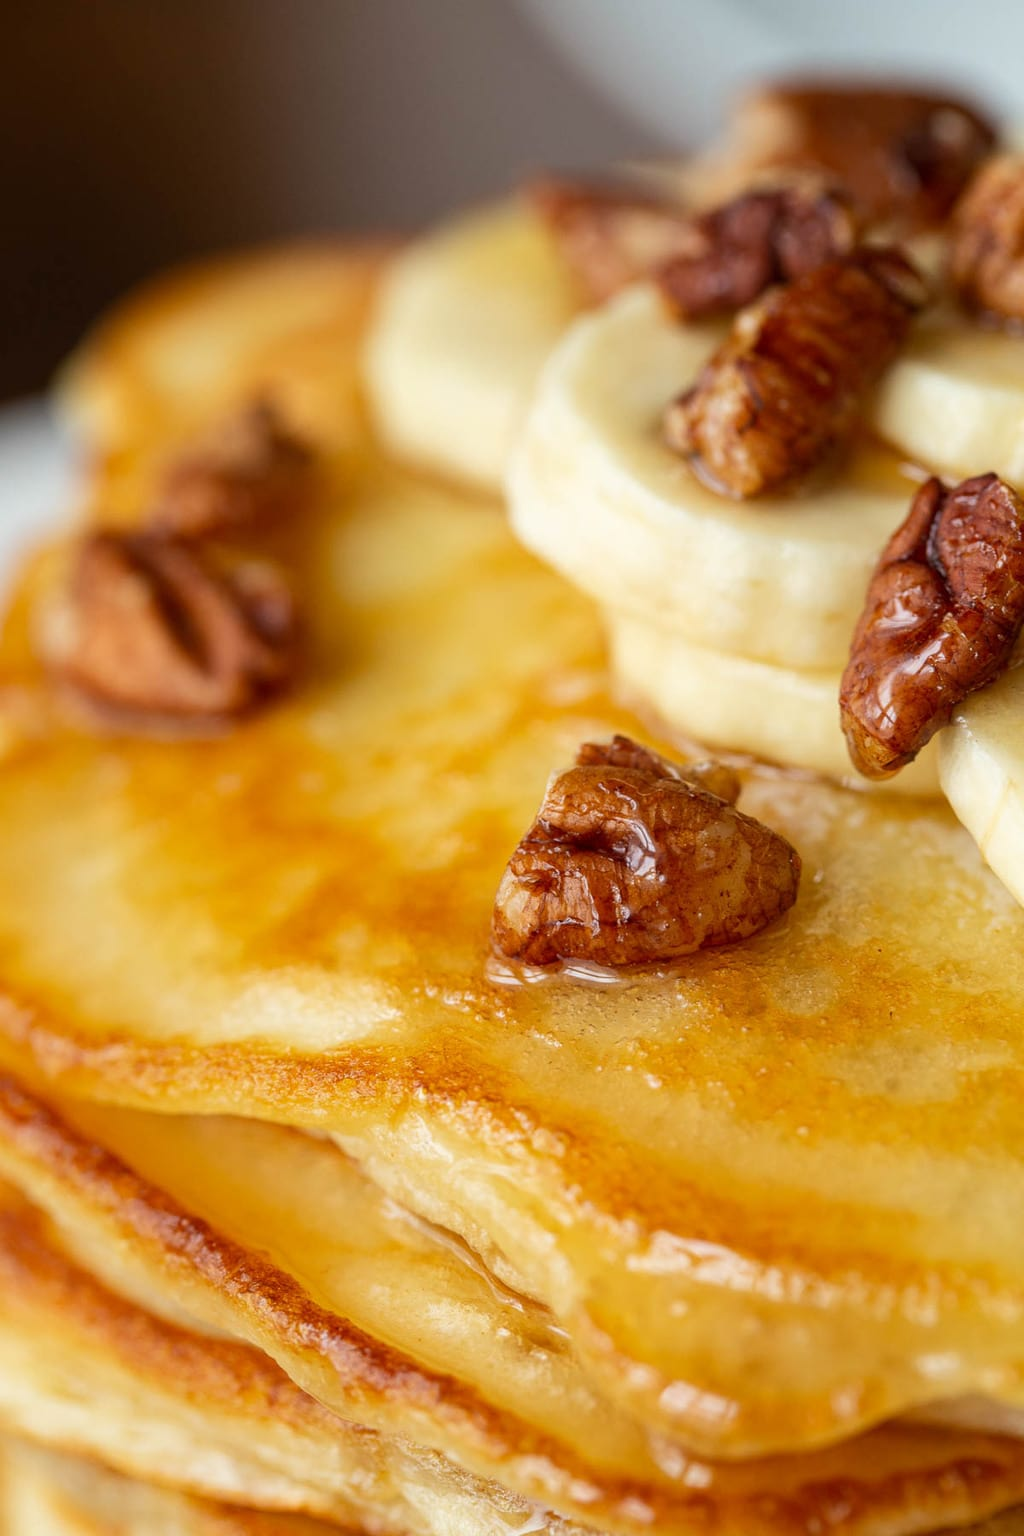 Ultra closeup vertical photo of the top of a stack of Best Ever Pancakes garnished with pecans, bananas and maple syrup.